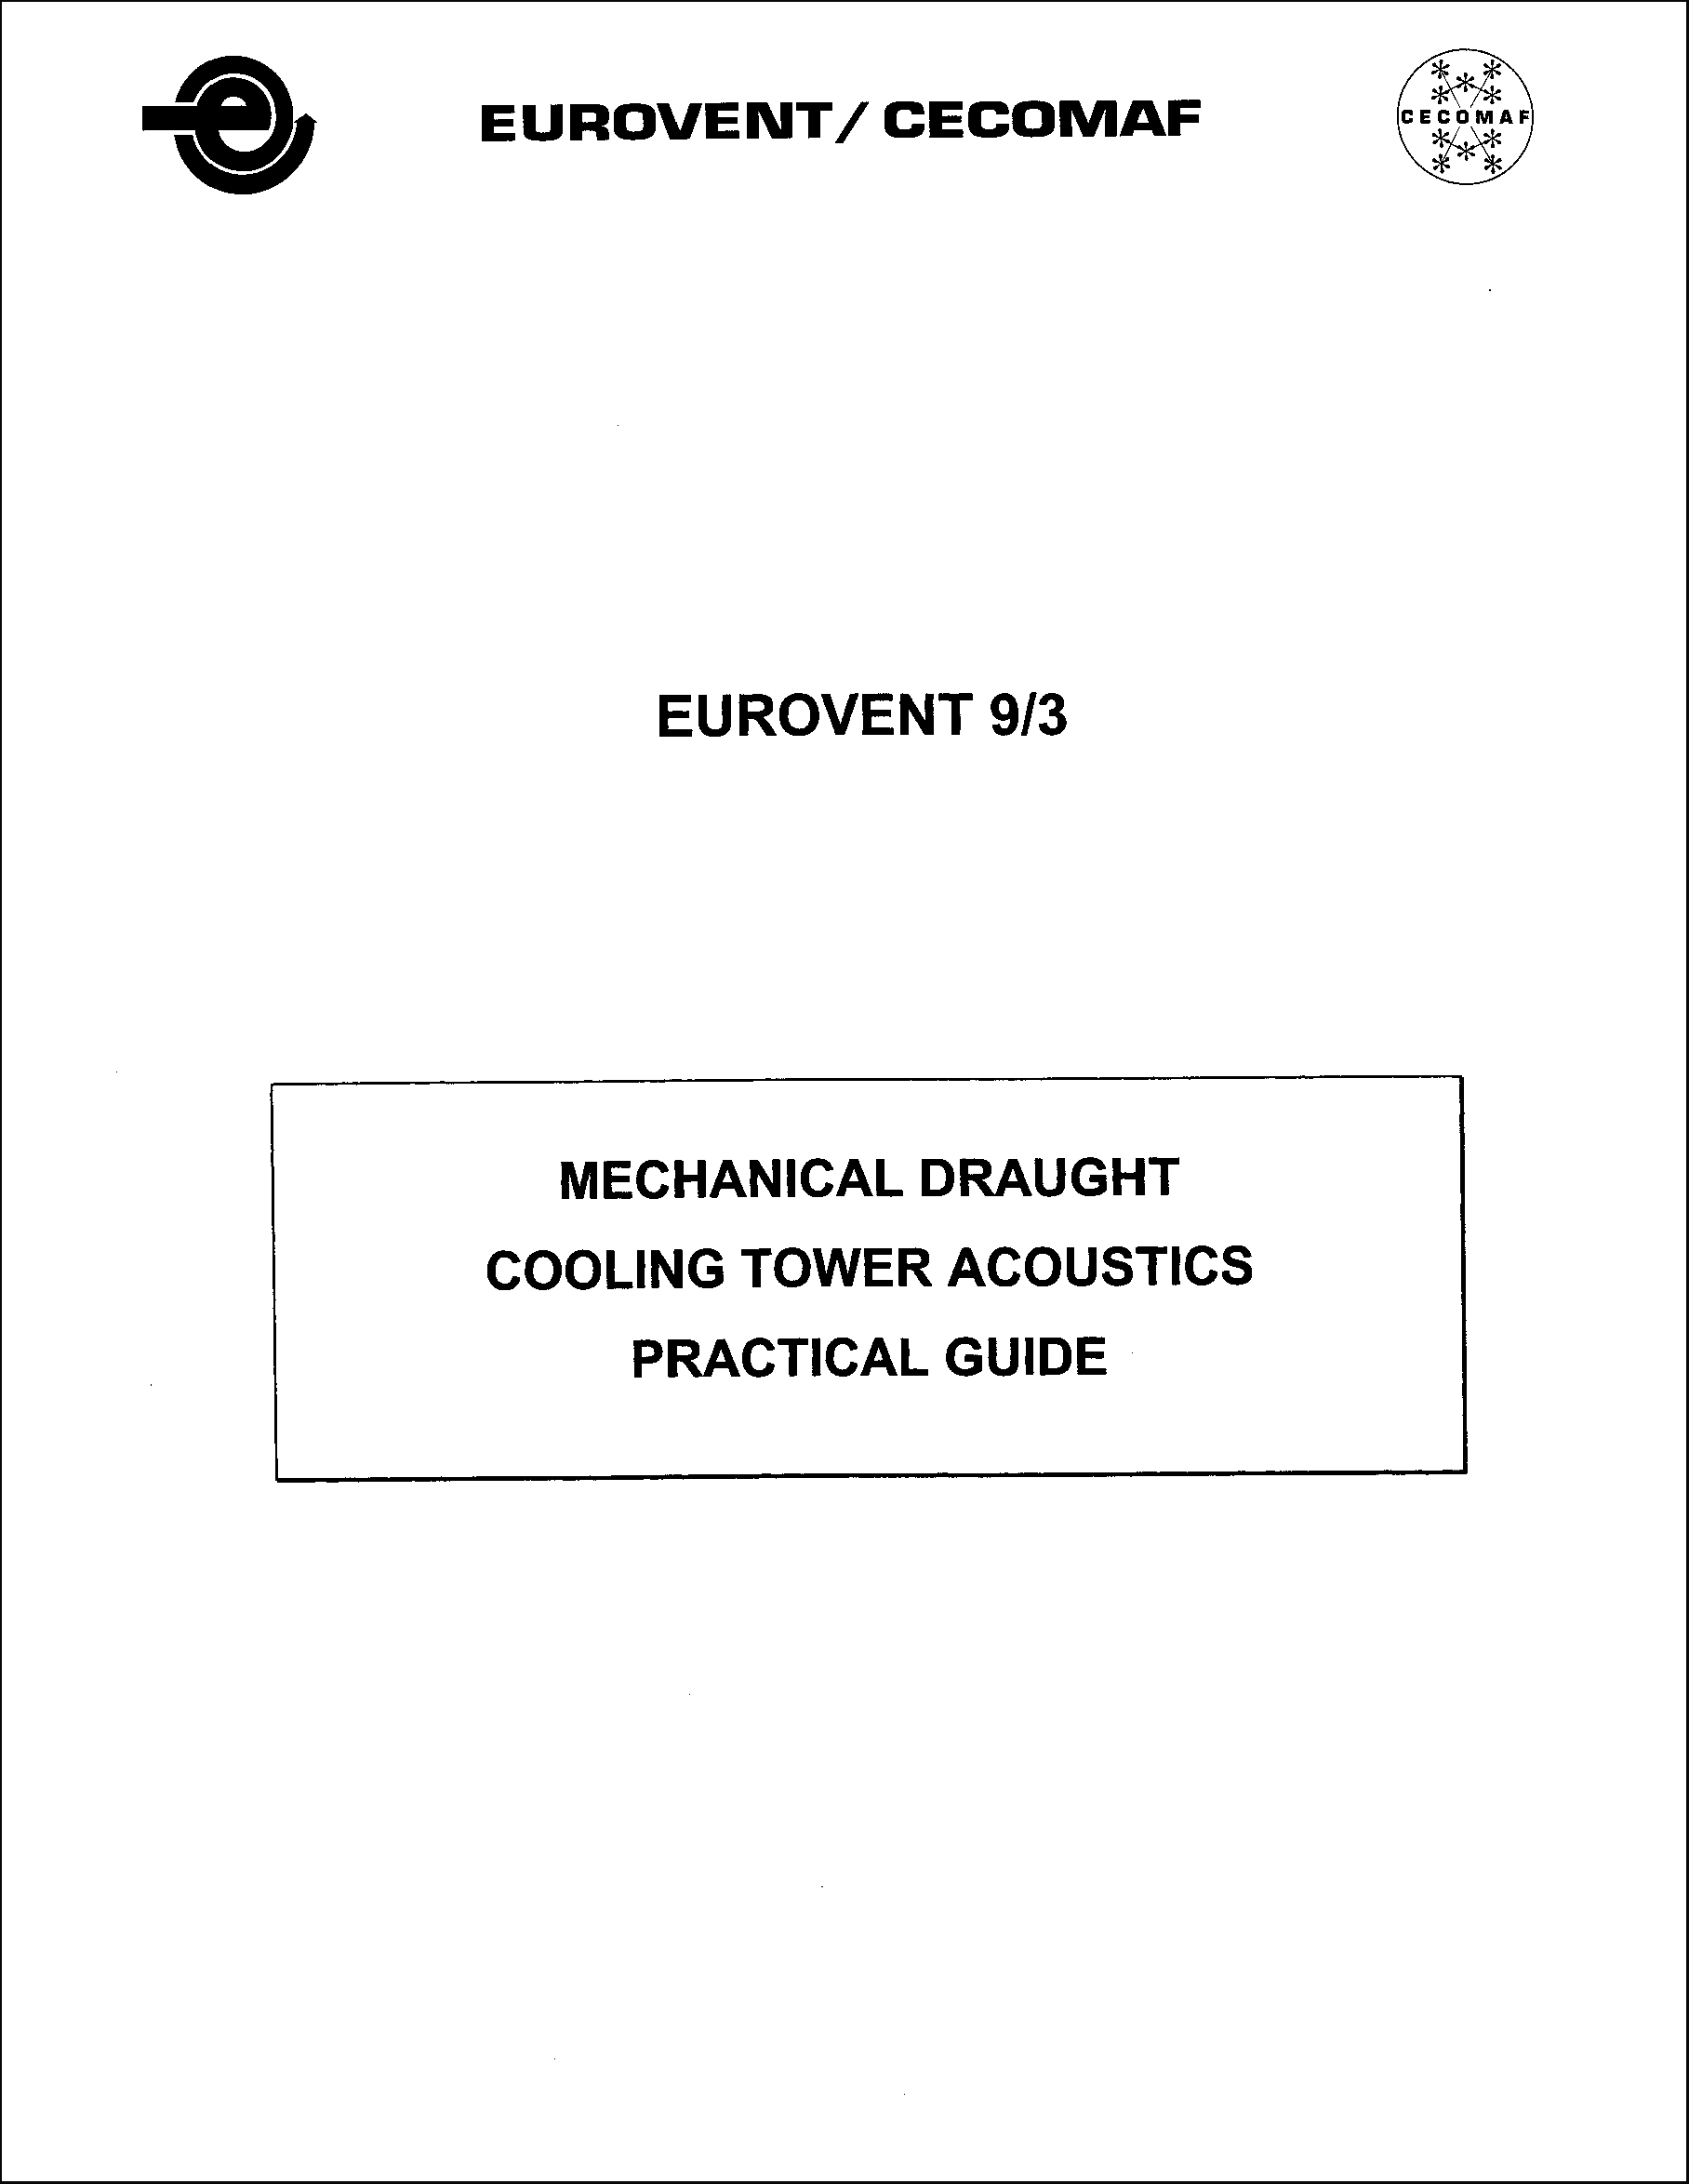 1999 - Mechanical draught cooling tower acoustics practical guide